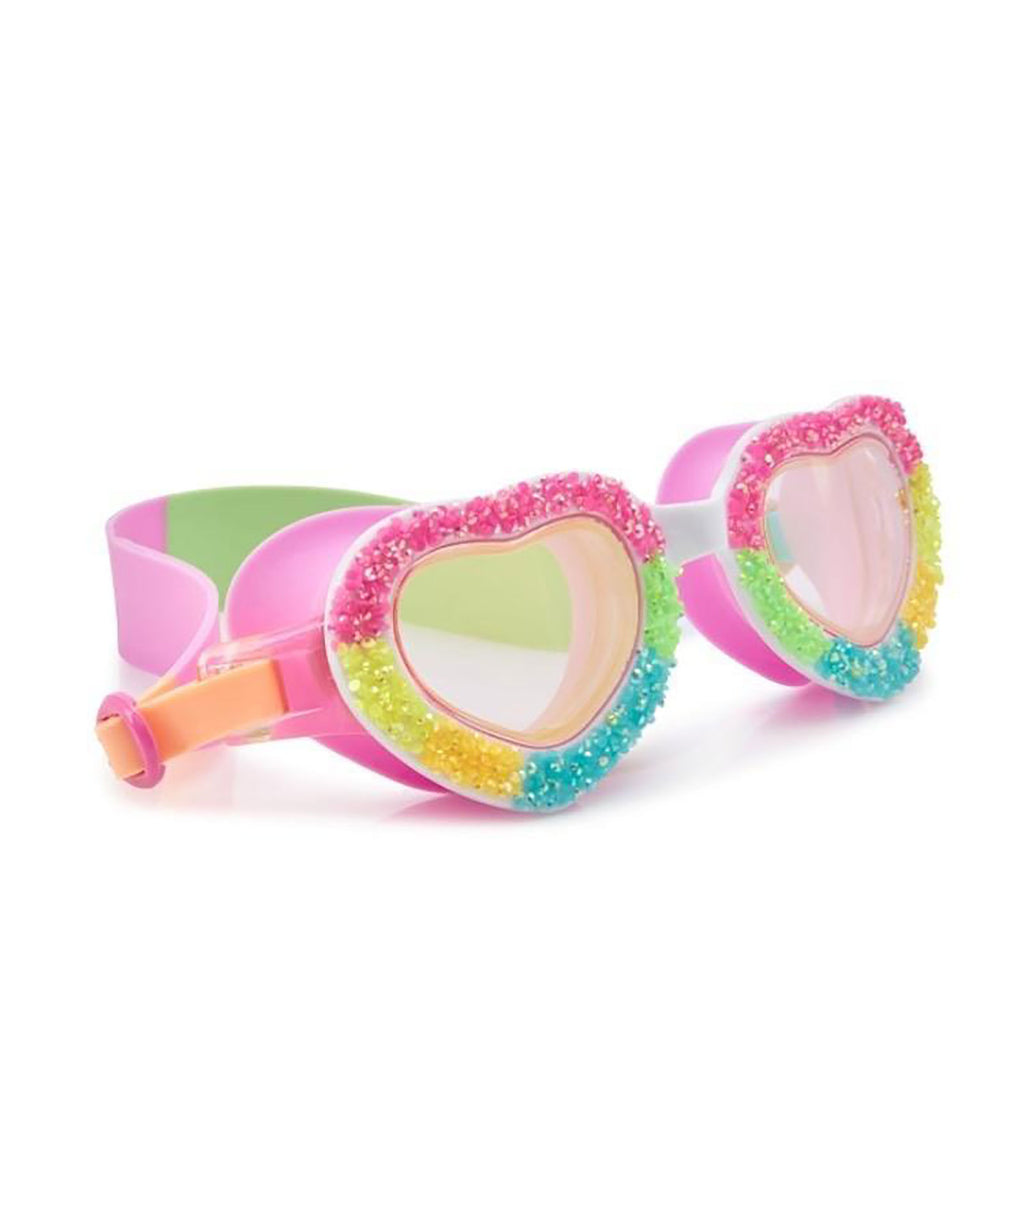 Bling2o Pop Rocks Heart Swim Goggles